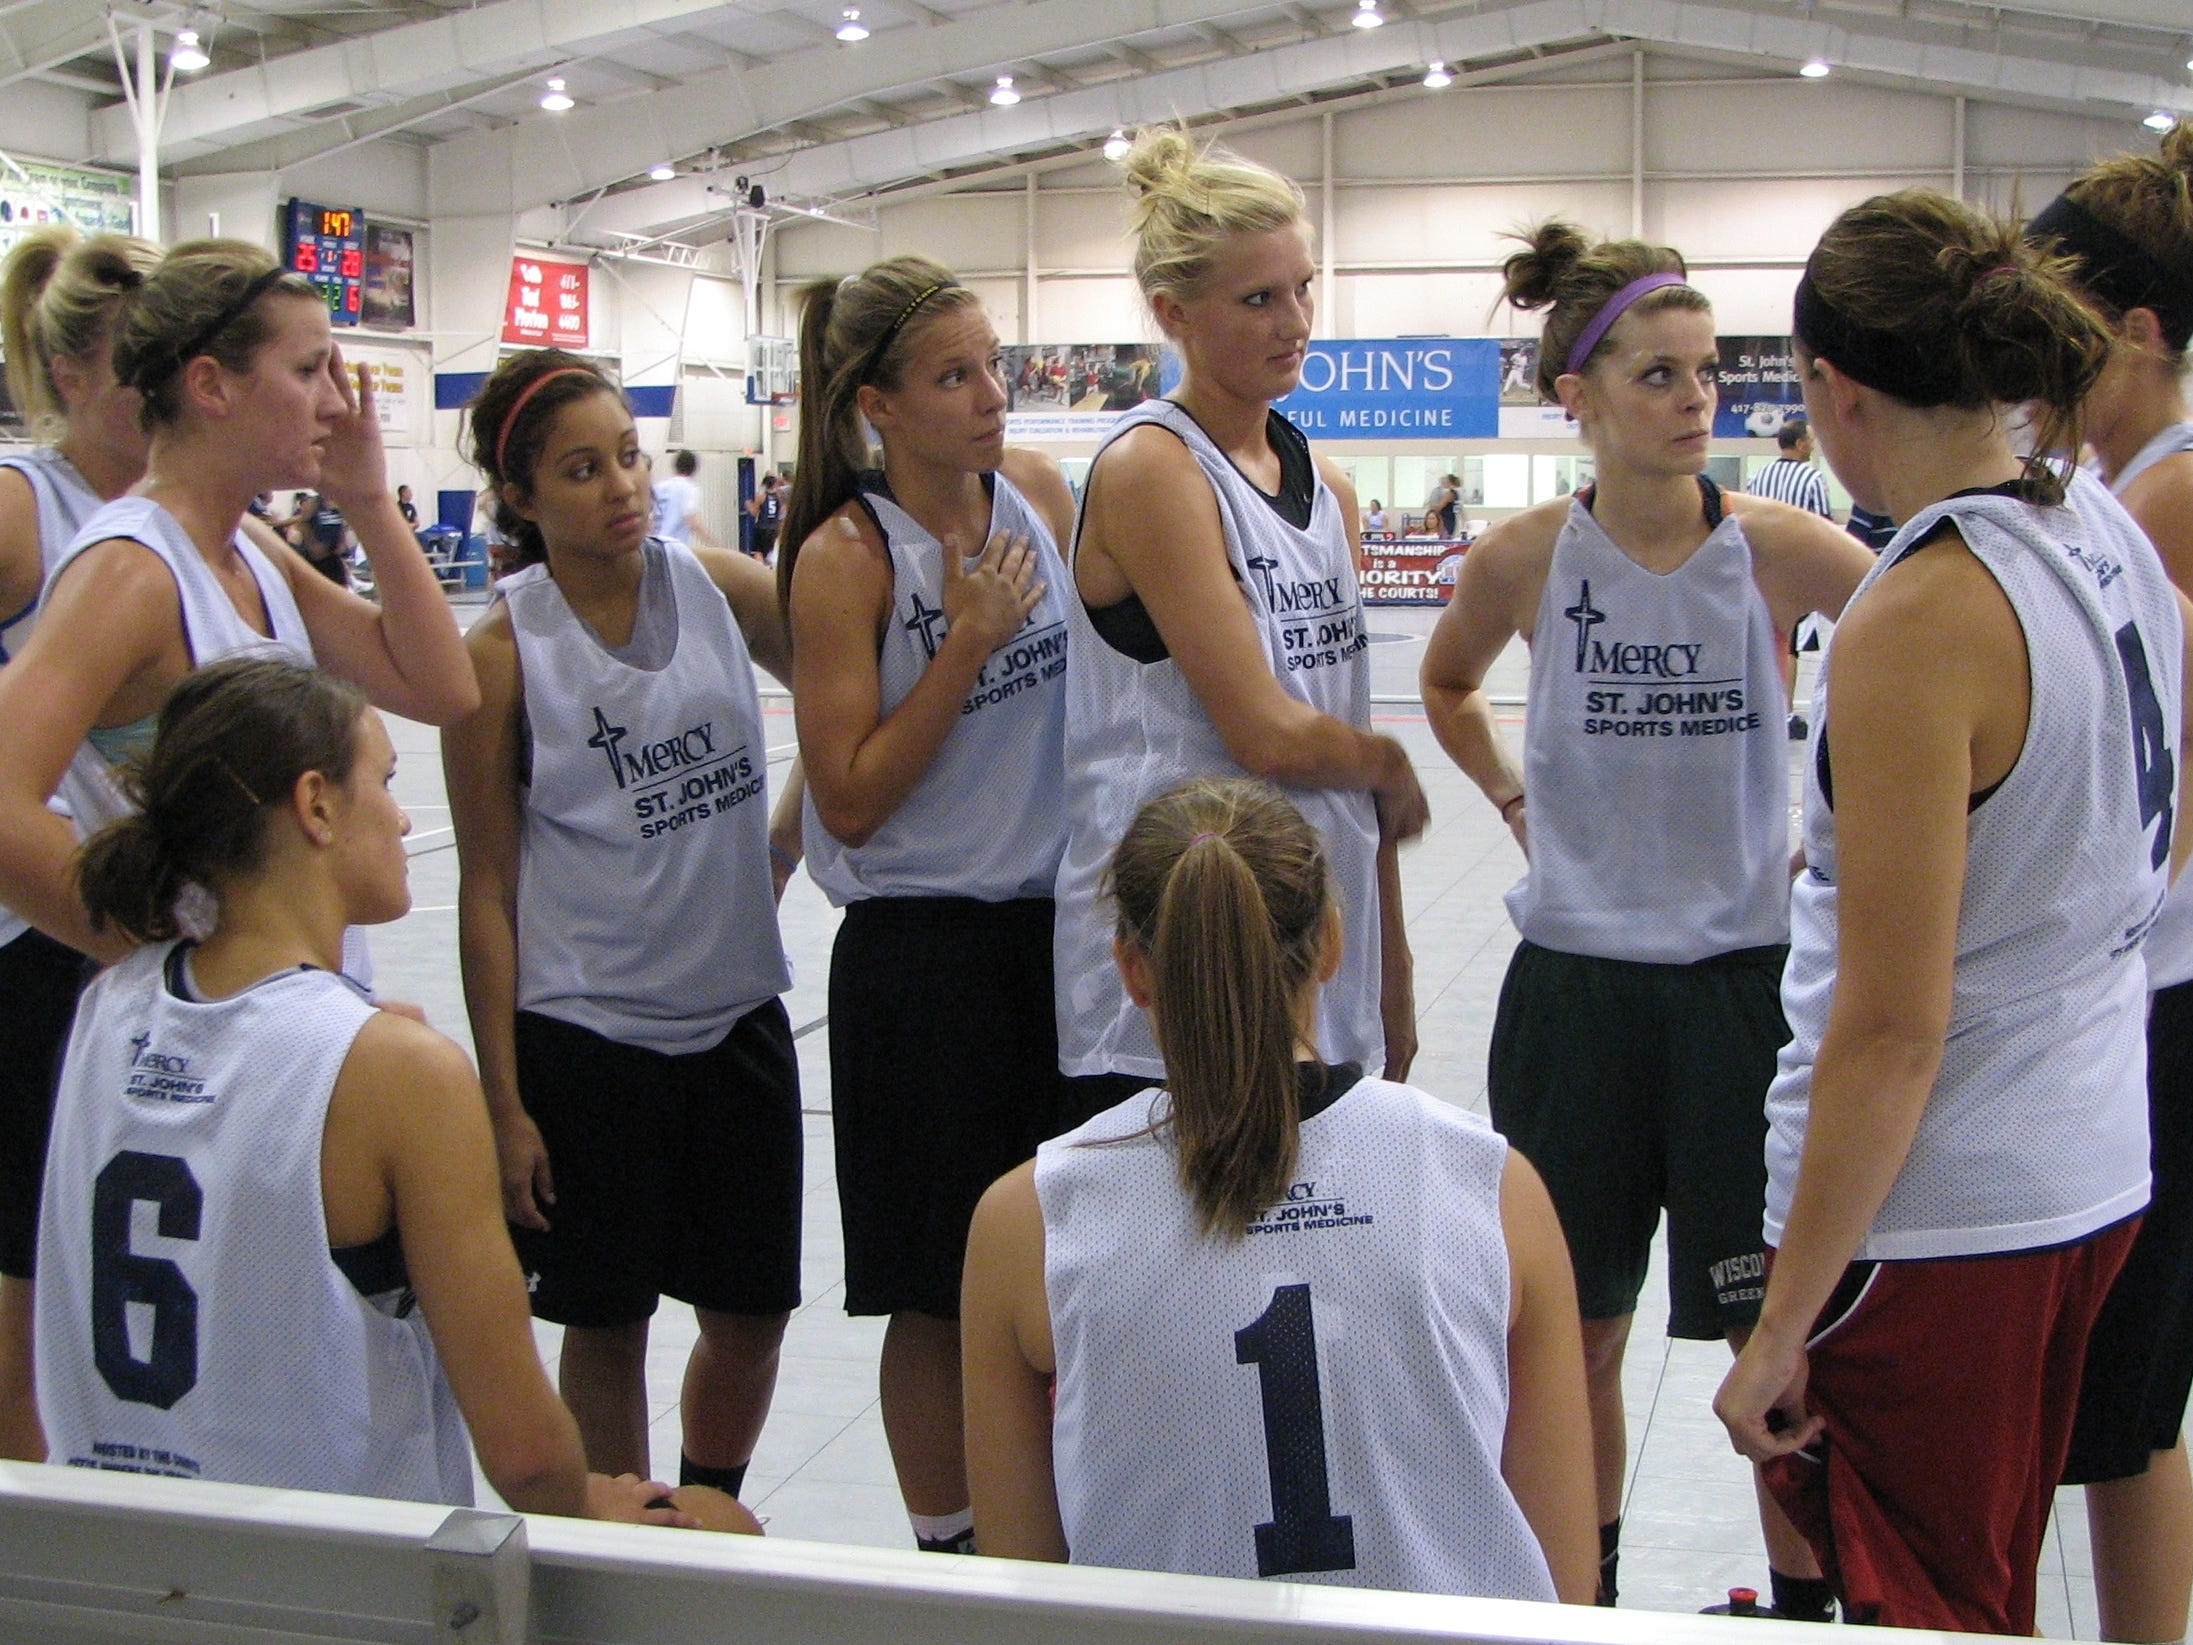 Members of the Drury Lady Panthers gather for a tactical discussion at halftime of a game at The Courts Summer Pro-Am League on Wednesday, June 30, 2010.